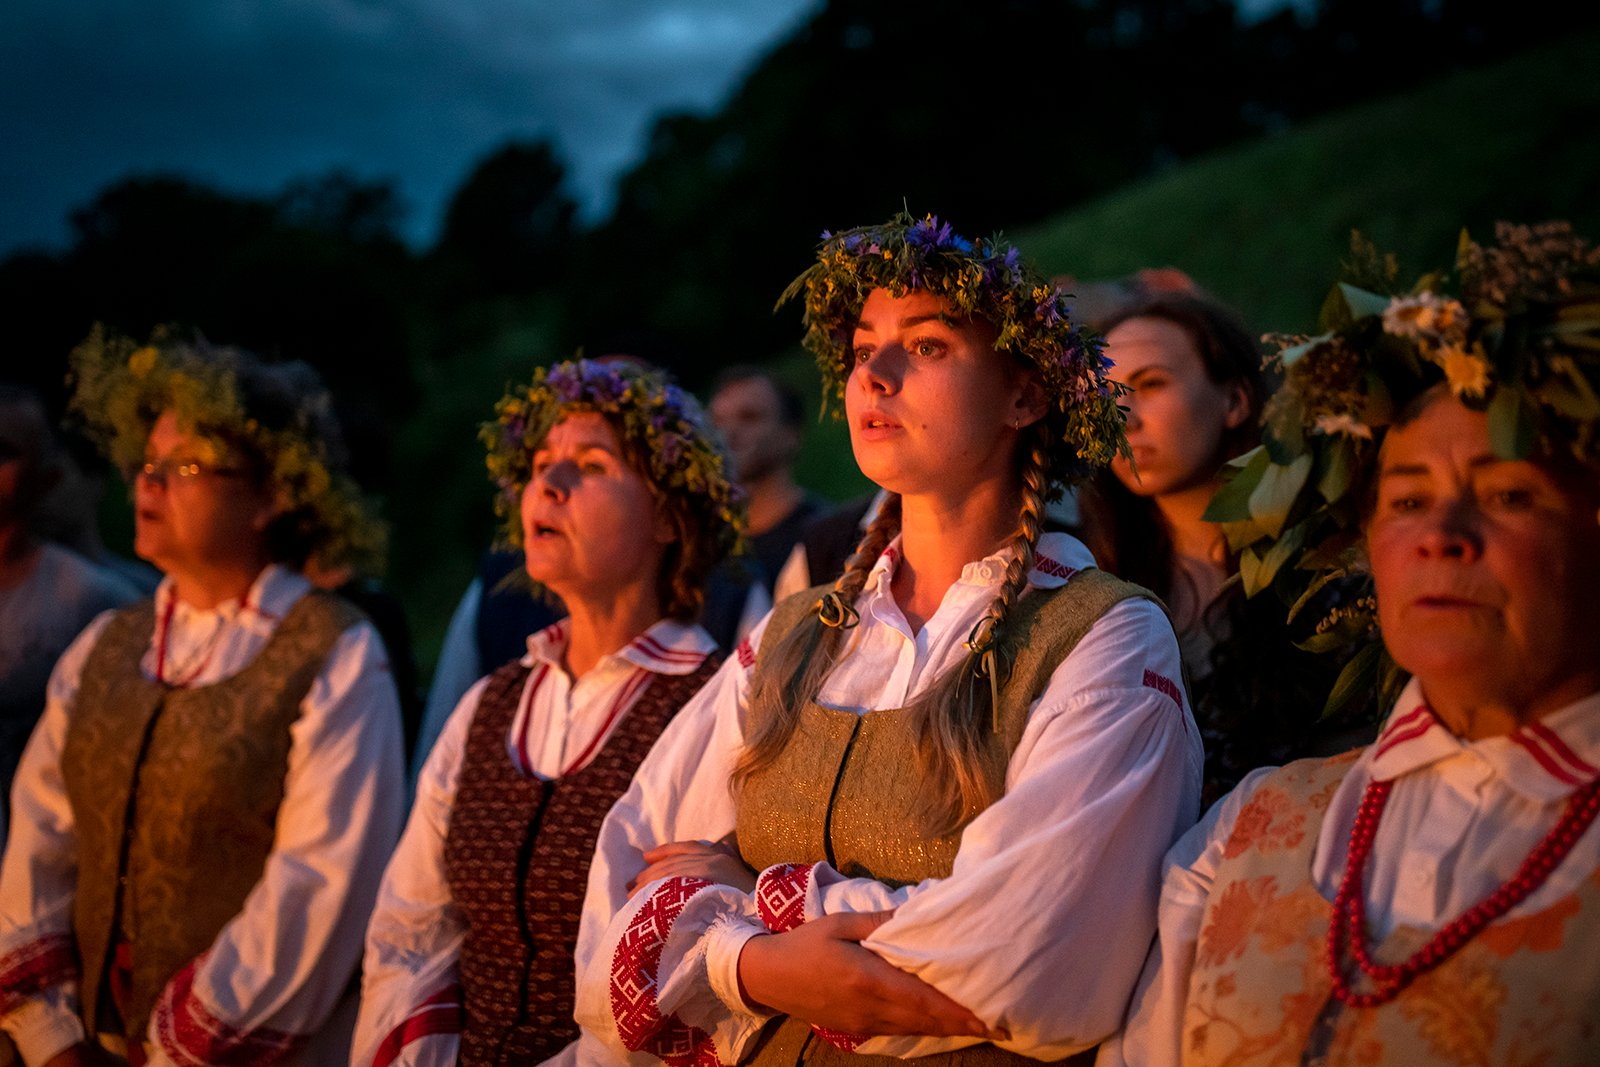 Women wearing flower crowns and traditional Lithuanian outfits sing songs during a celebration of Midsummer Day and the summer solstice in the small town of Kernave, northwest of the capital Vilnius, Lithuania, Wednesday, June 23, 2021. Midsummer or Midsummer, the shortest night of the year, is filled with magic - the festivities include making wreaths of oak leaves and jumping over the flames, and young people are encouraged to go out and look for fern flowers.  (AP Photo / Mindaugas Kulbis)